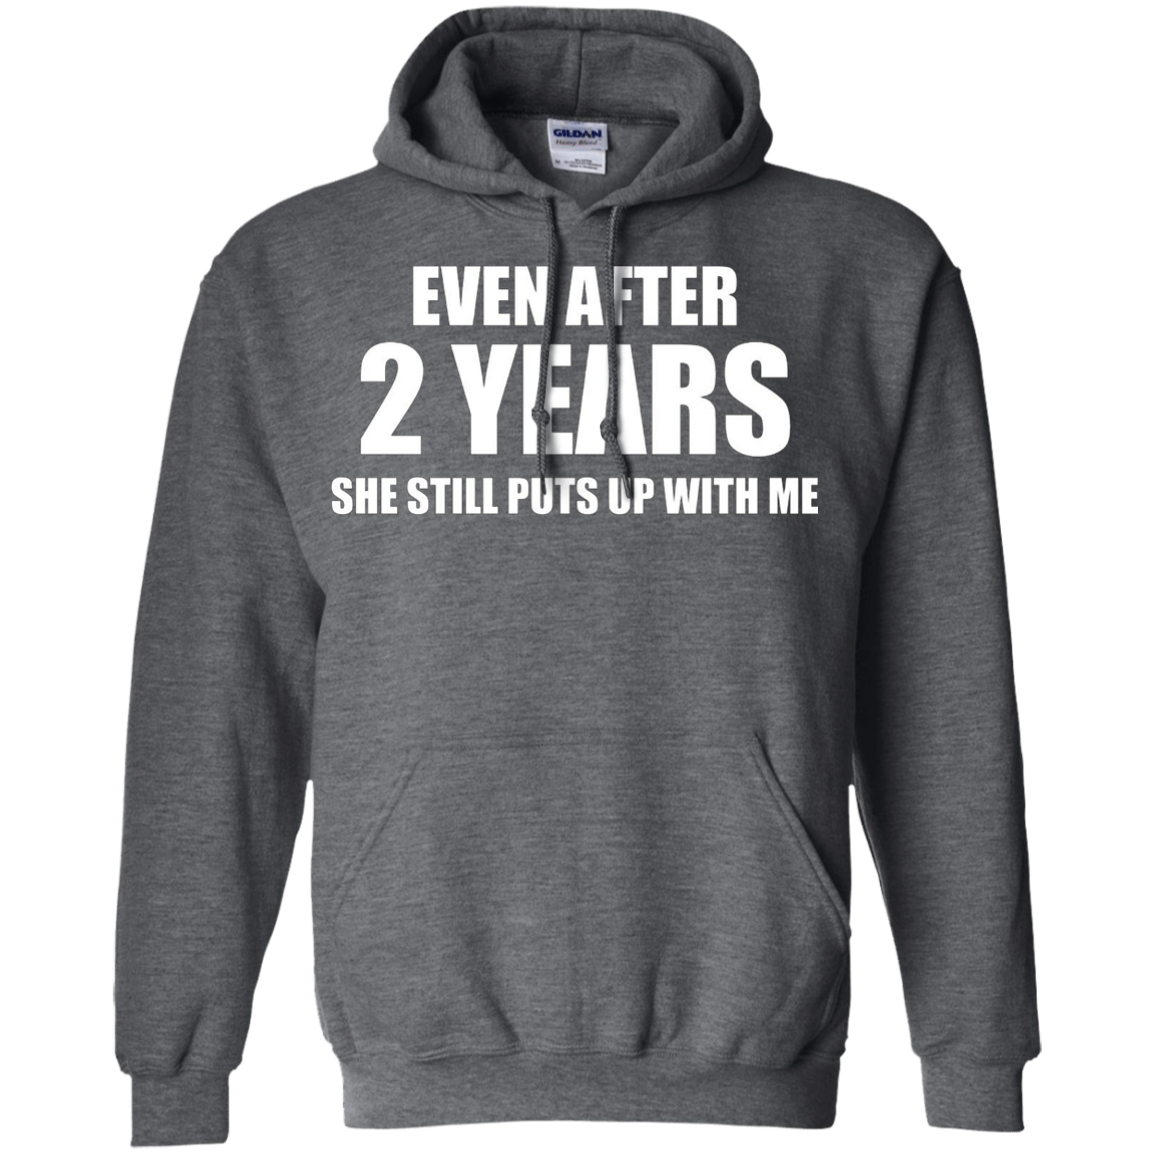 2 Year Anniversary Shirt Funny Relationship Gifts for Him